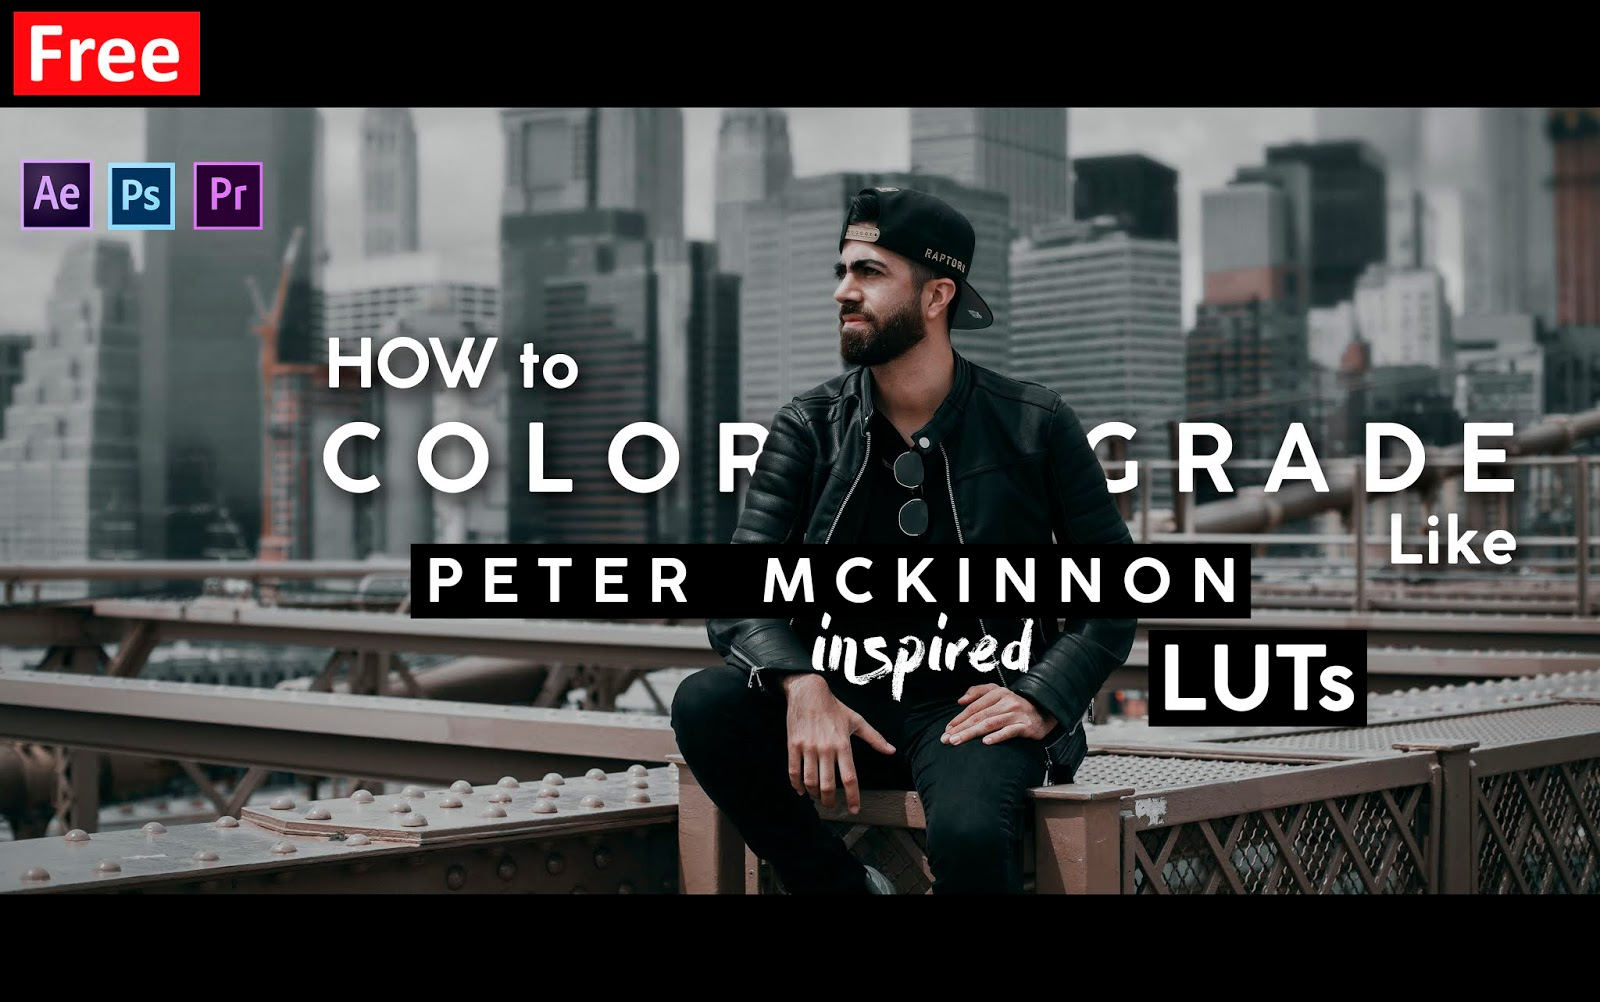 Download Peter Mckinnon Inspired LUTs for Free | How to ...